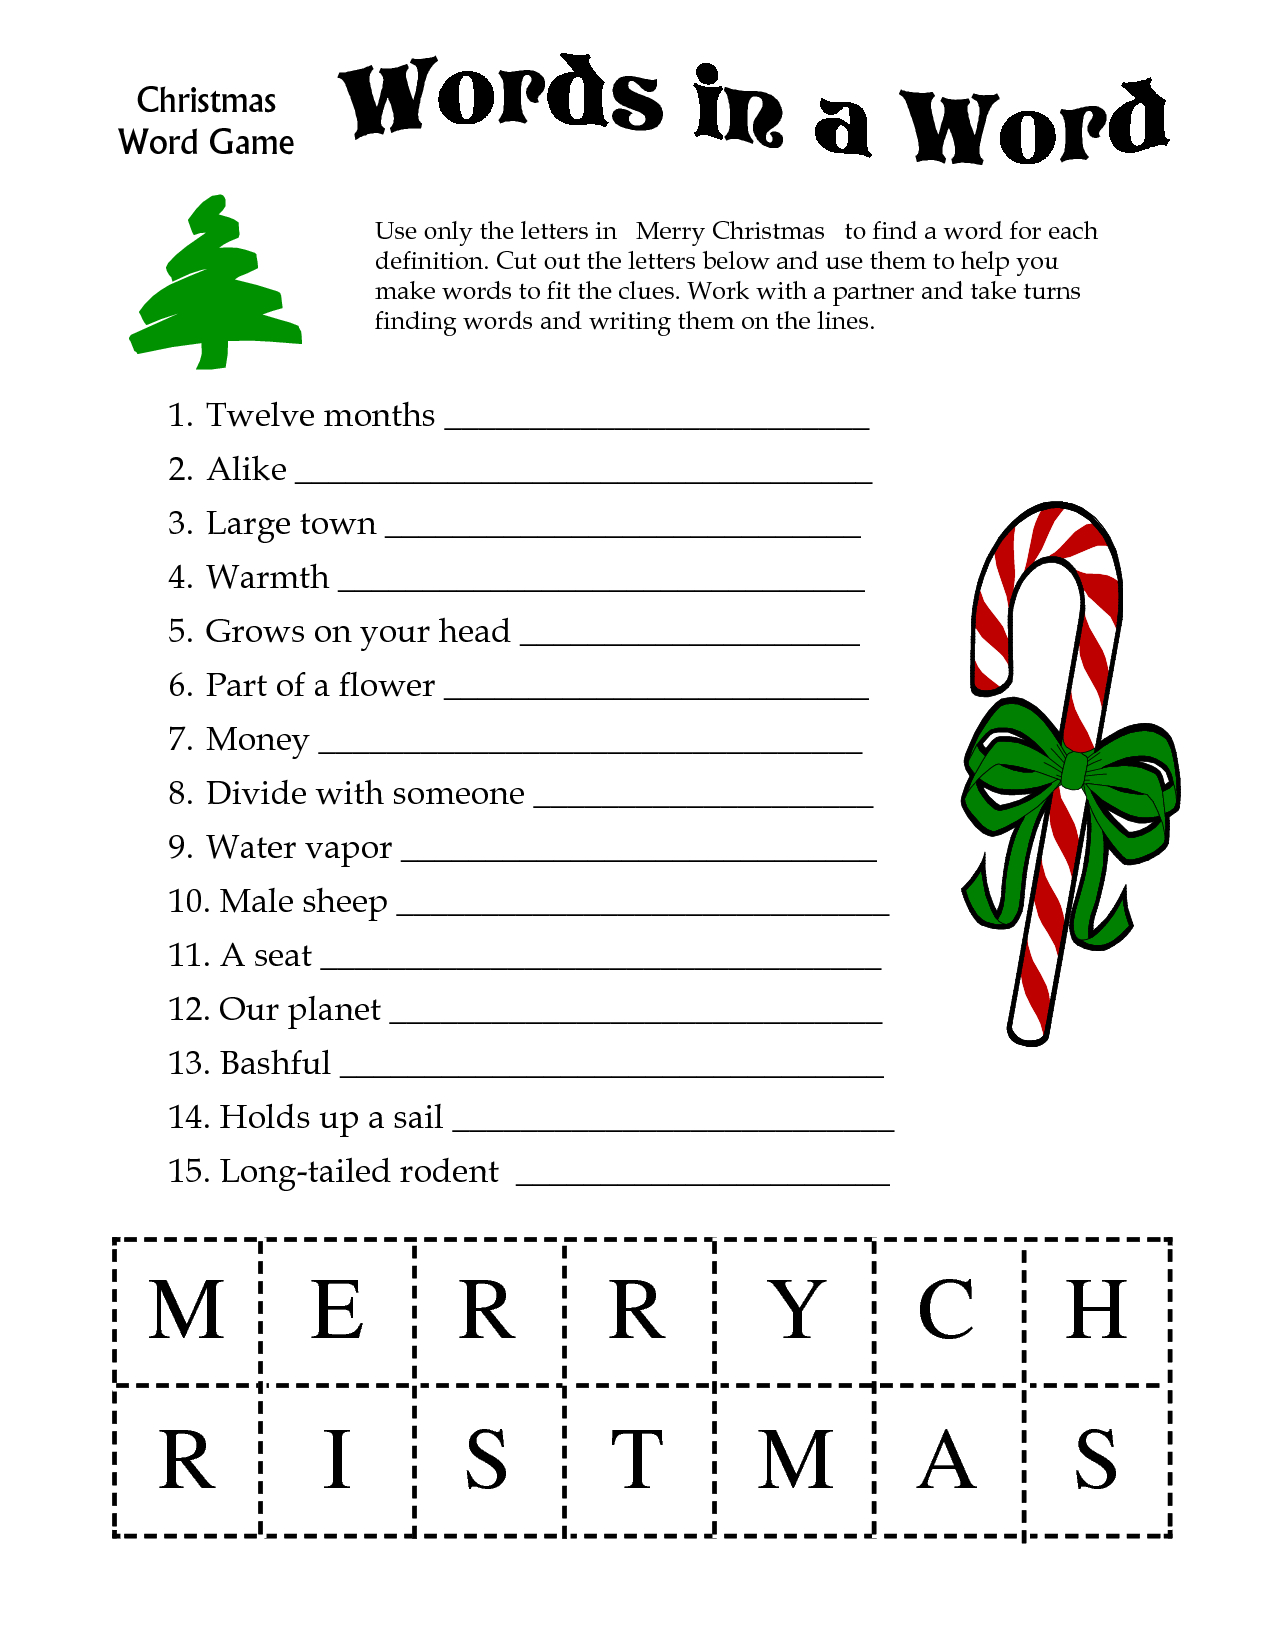 Free Printable Word Games For Christmas – Festival Collections - Free Printable Word Games